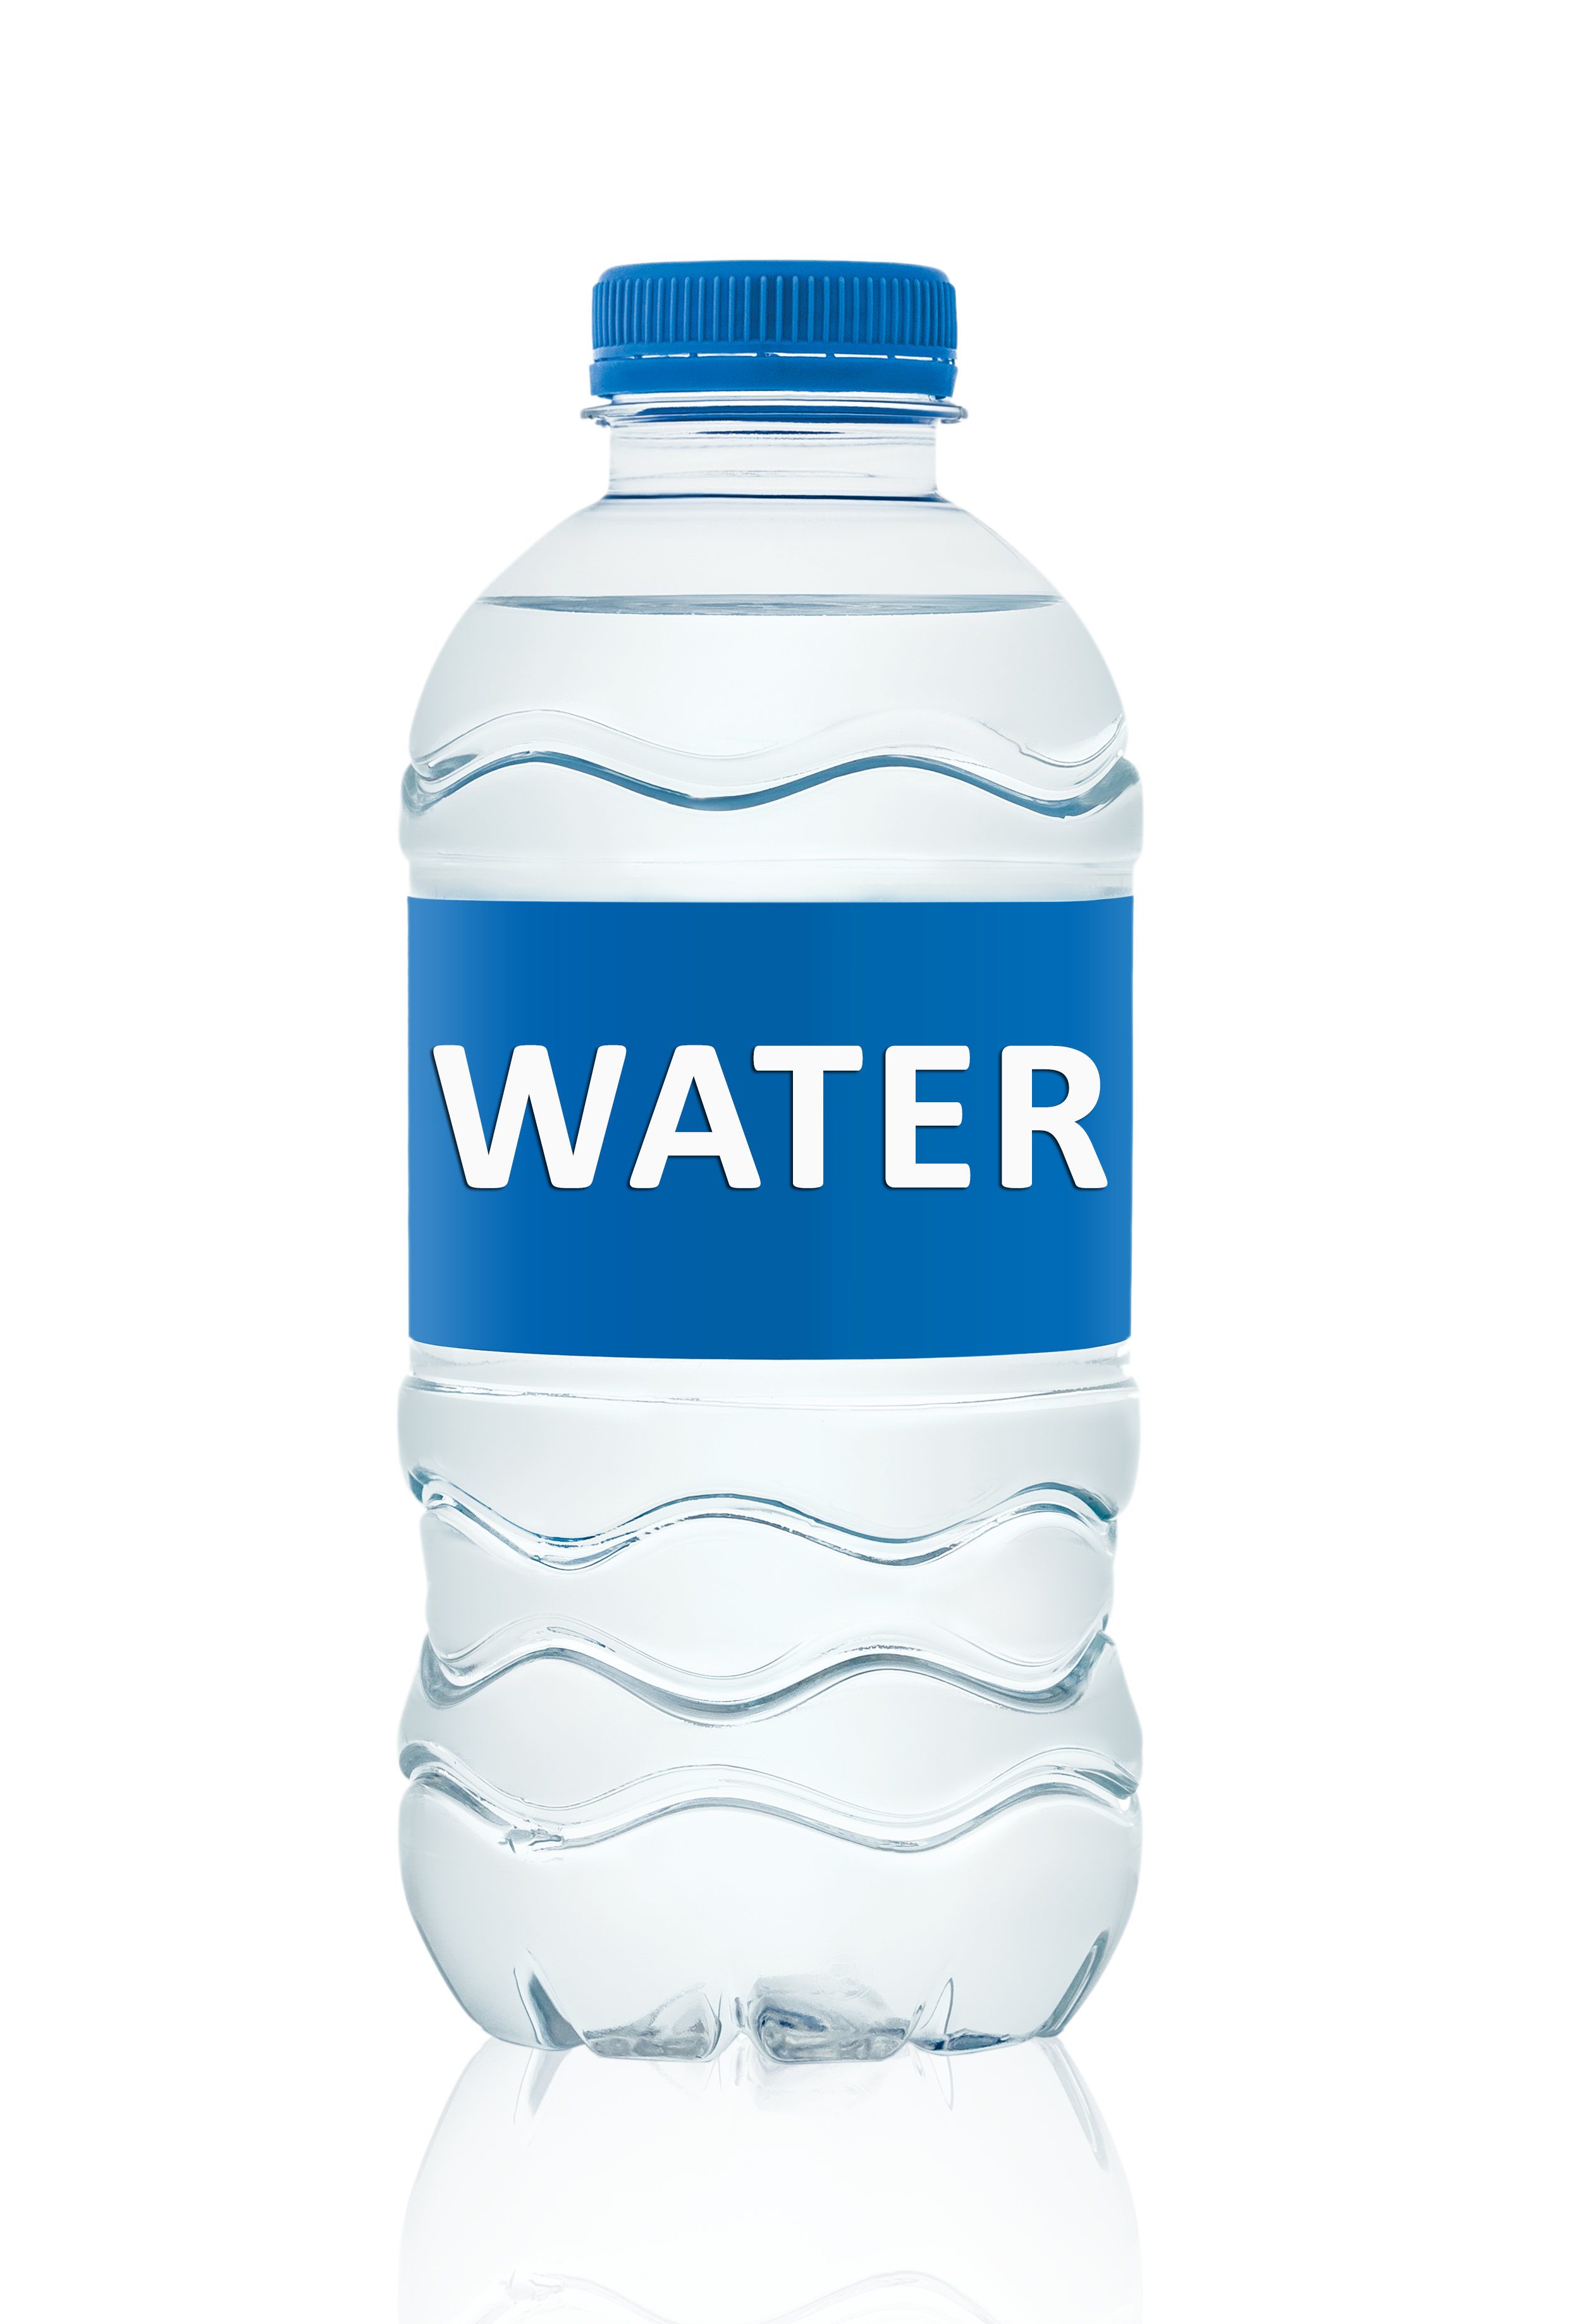 Bottle of water png. Compare filters lifesource